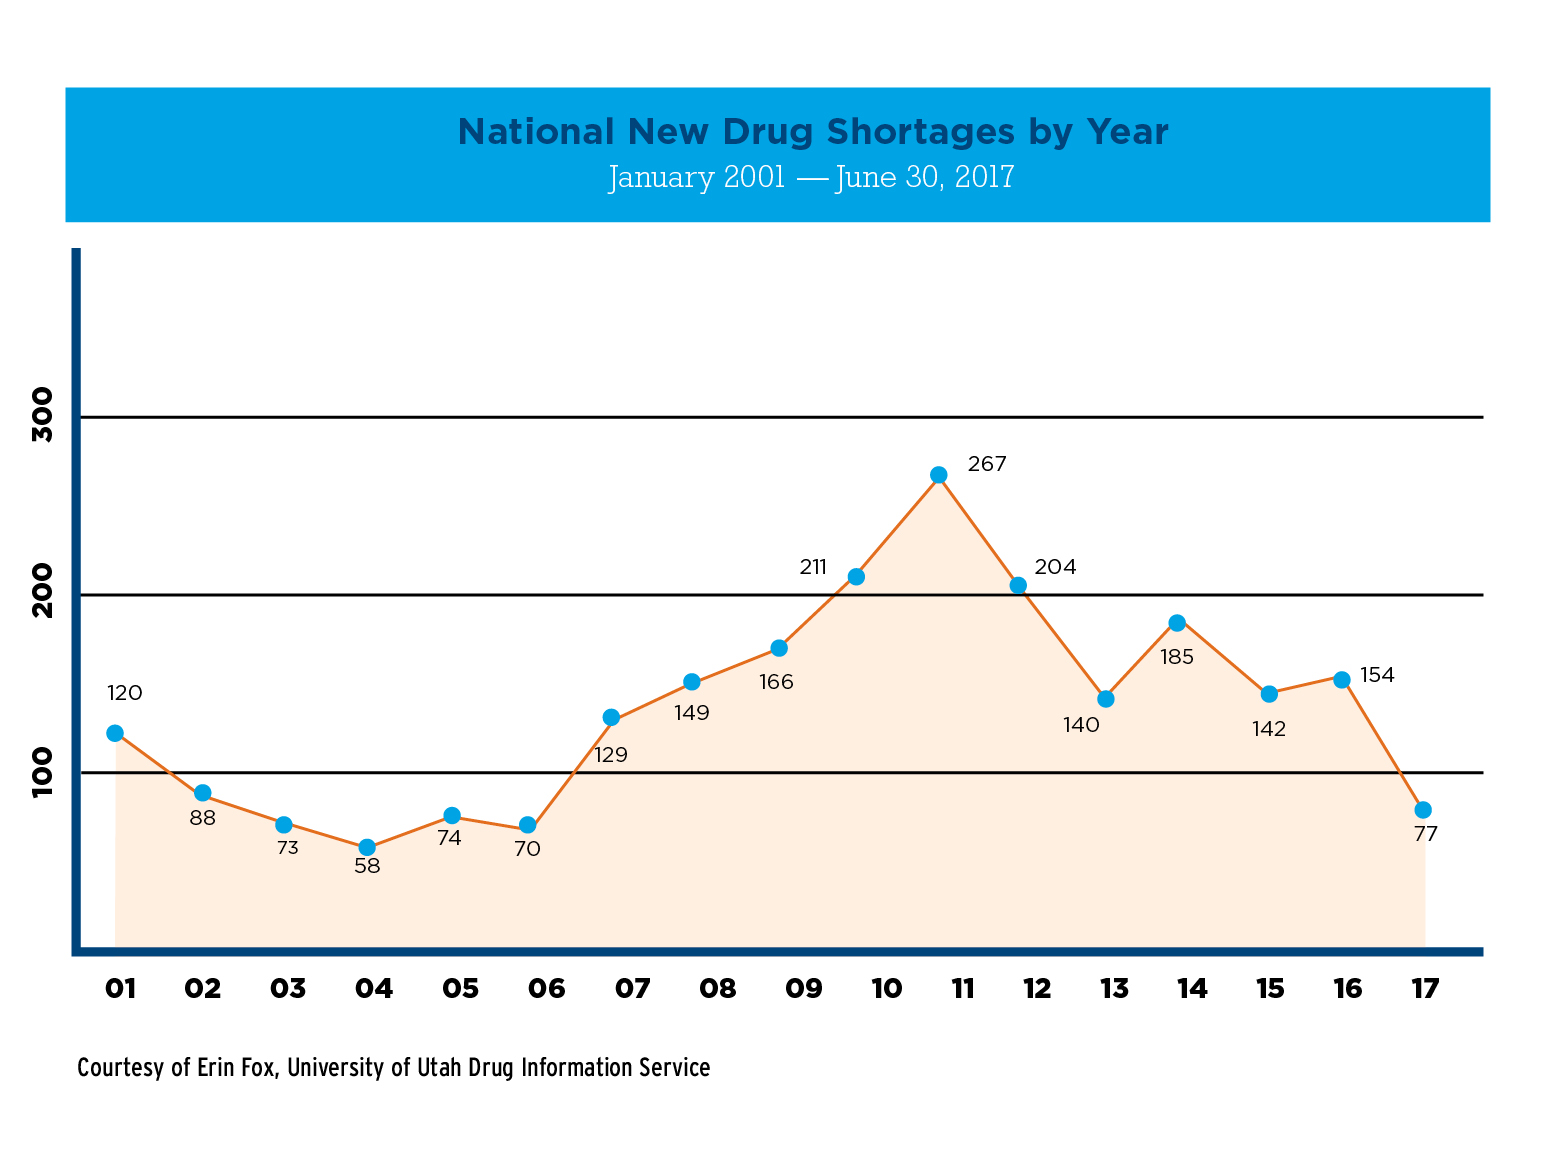 Drug Shortages: Enduring Effects, Continued Challenges of